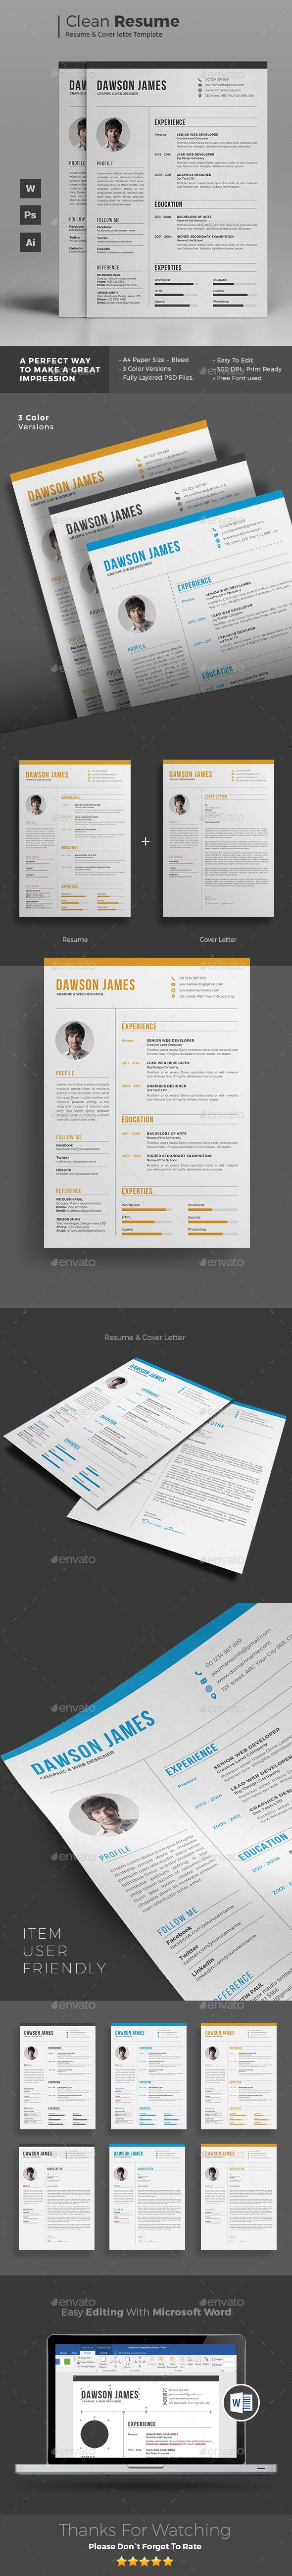 resume free cover letter templatestemplates